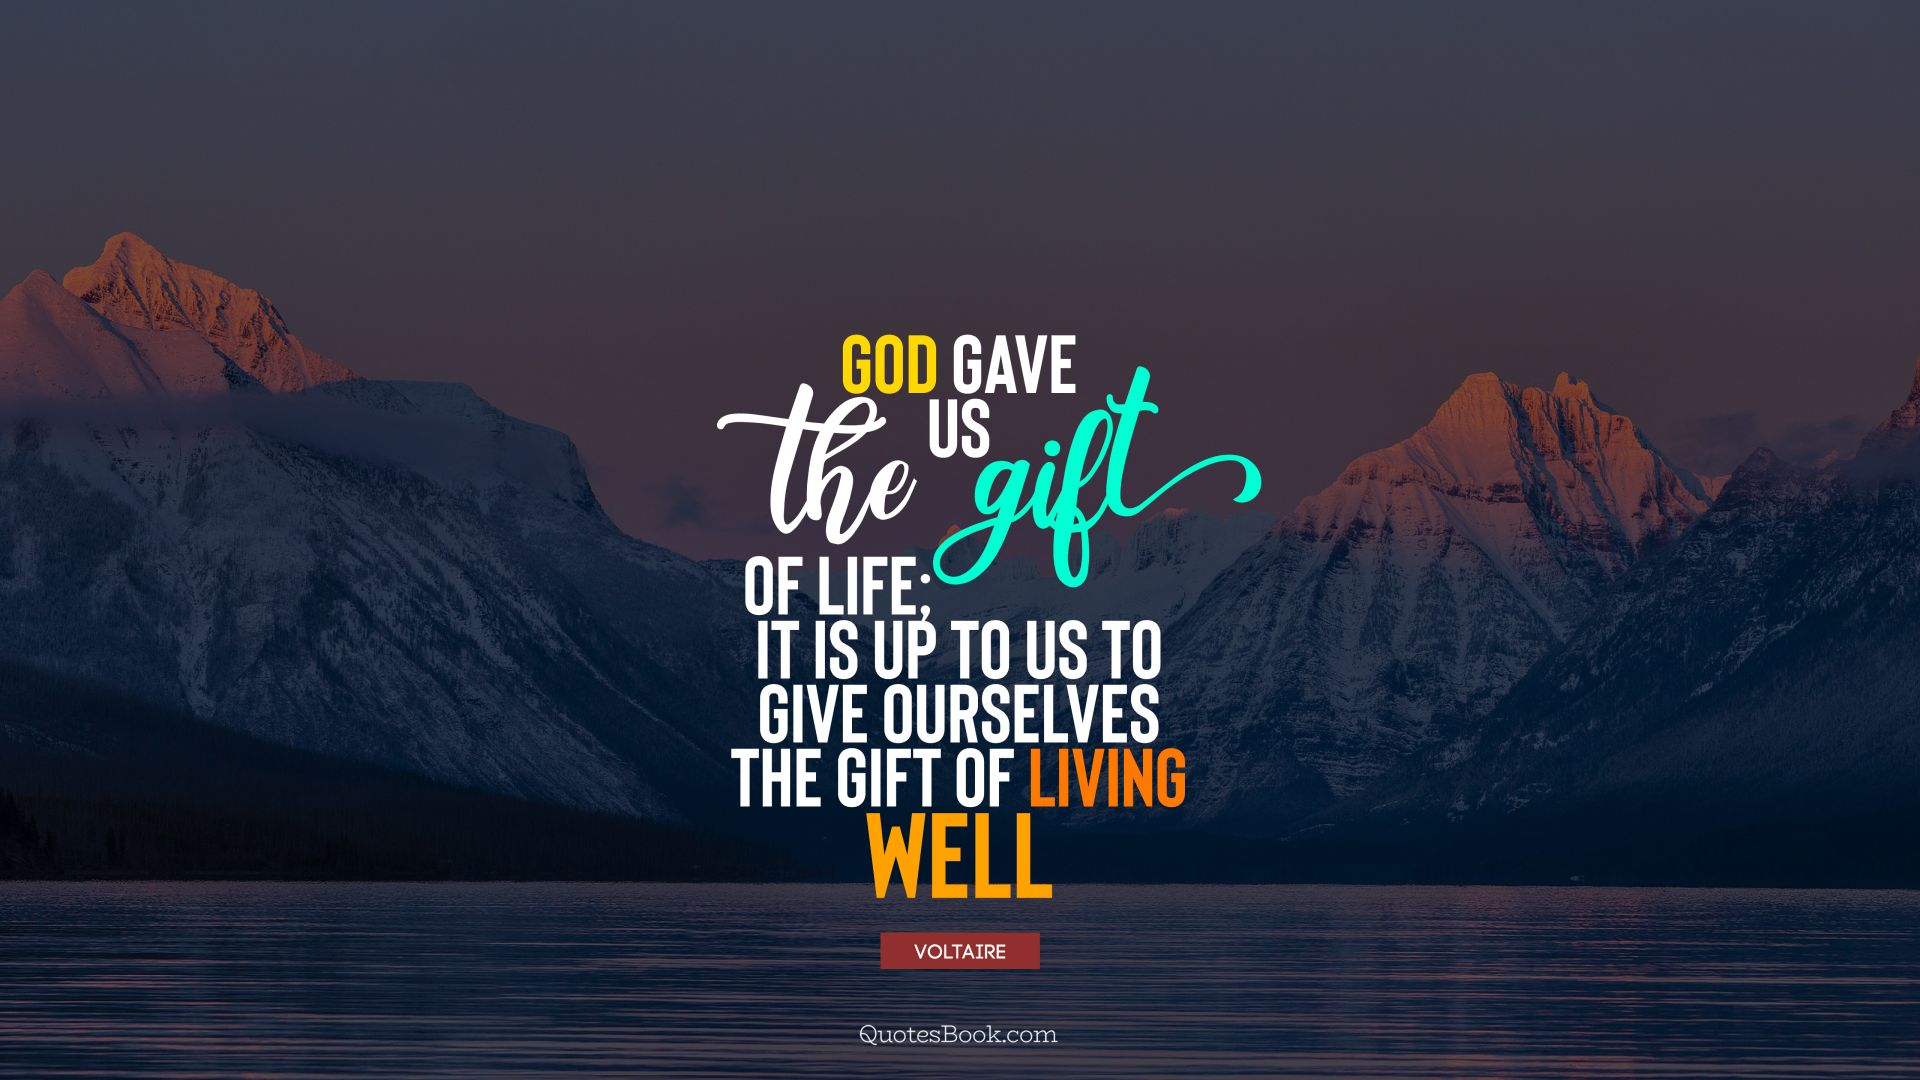 God gave us the gift of life; it is up to us to give ourselves the gift of living well. - Quote by Voltaire